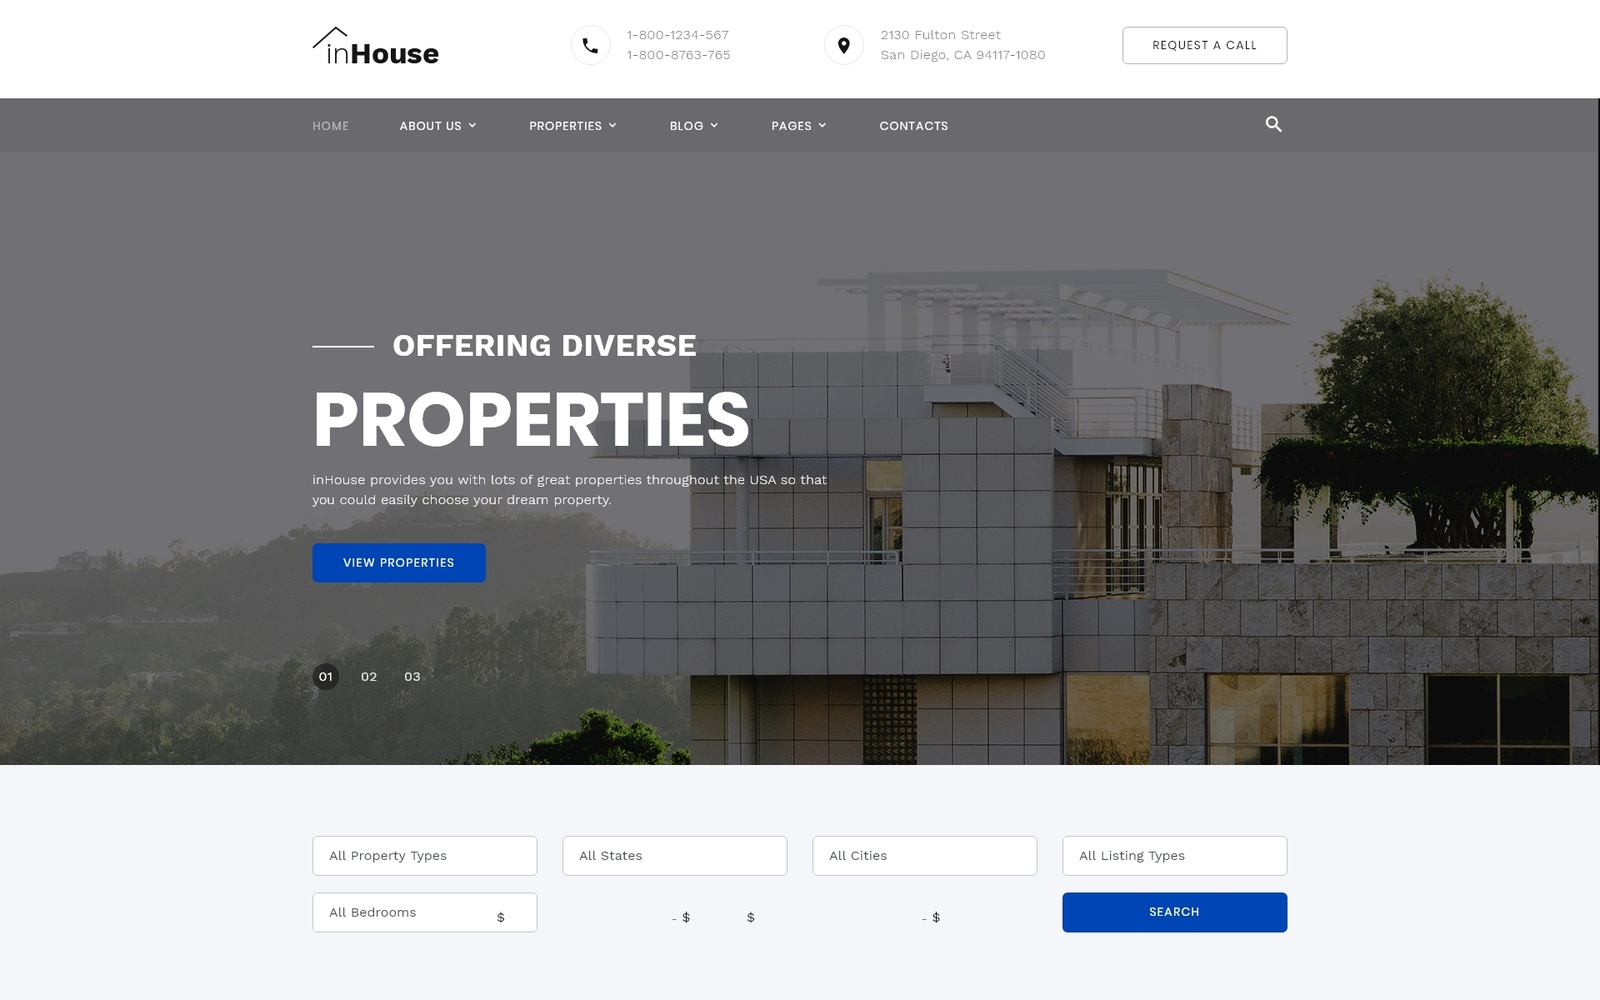 Website Design Template 73602 - estate agency services house realestate apartment building finance rentals management mortgage investment constructions architecture engineering sale broker